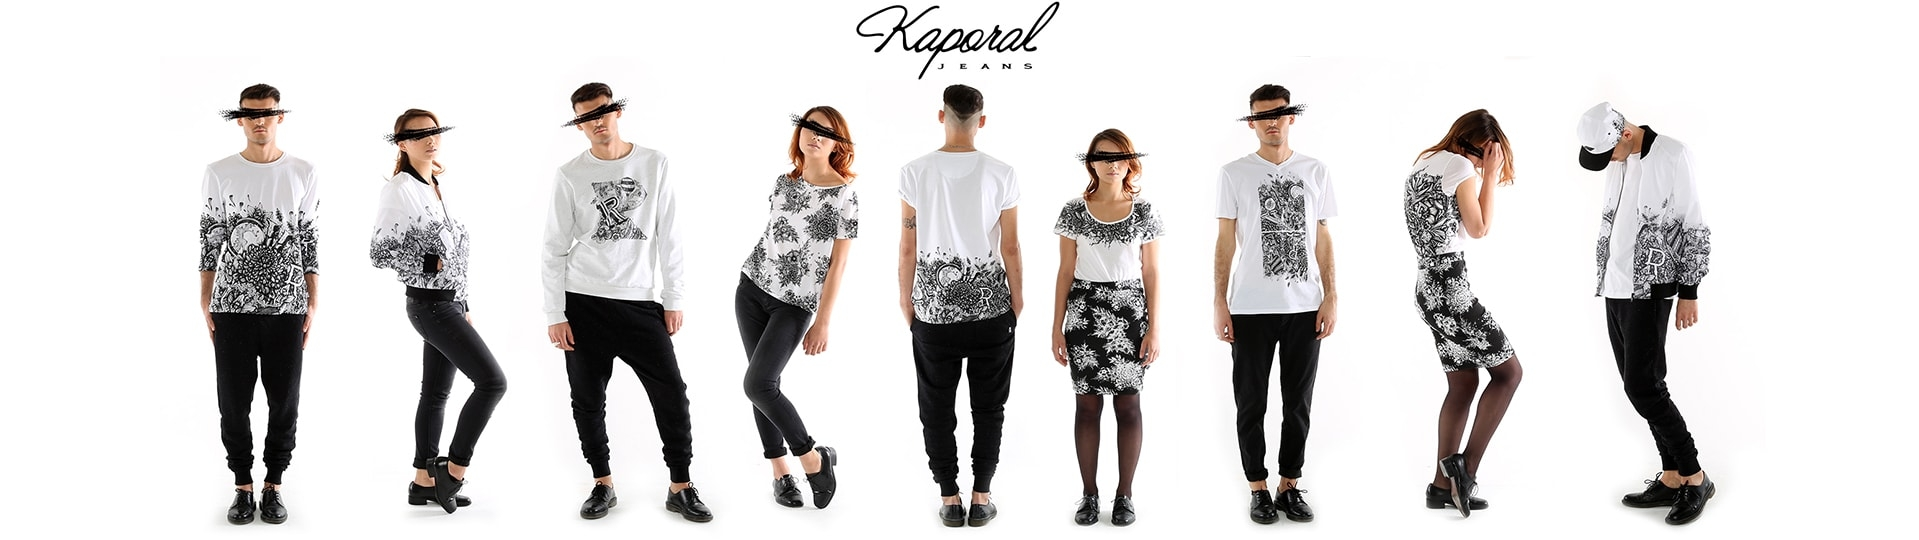 Collection Kaporal pas cher